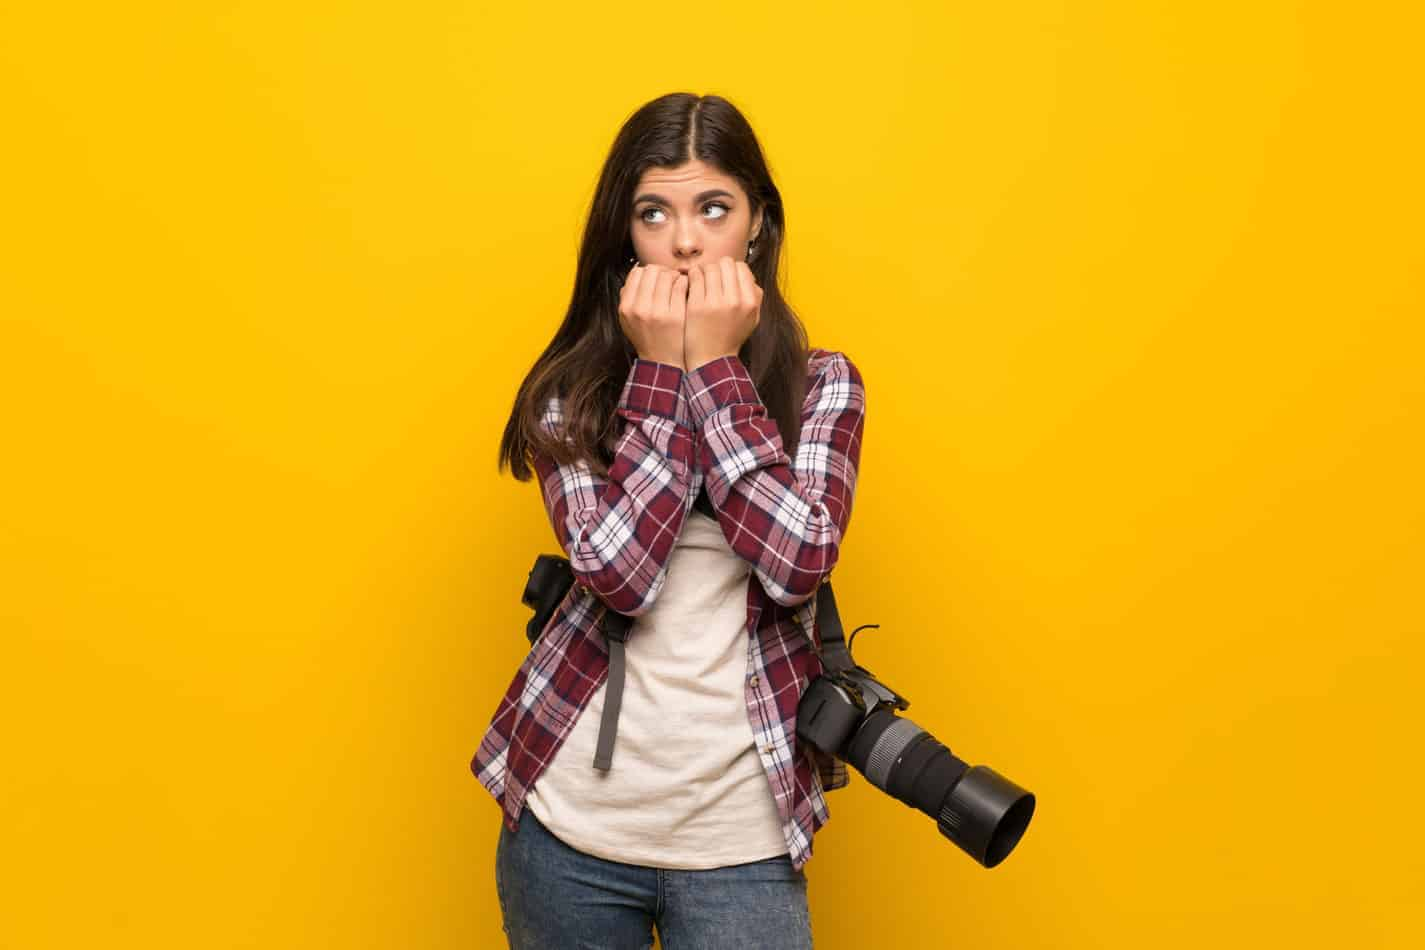 How to Tell a Client You Lost Their Photos